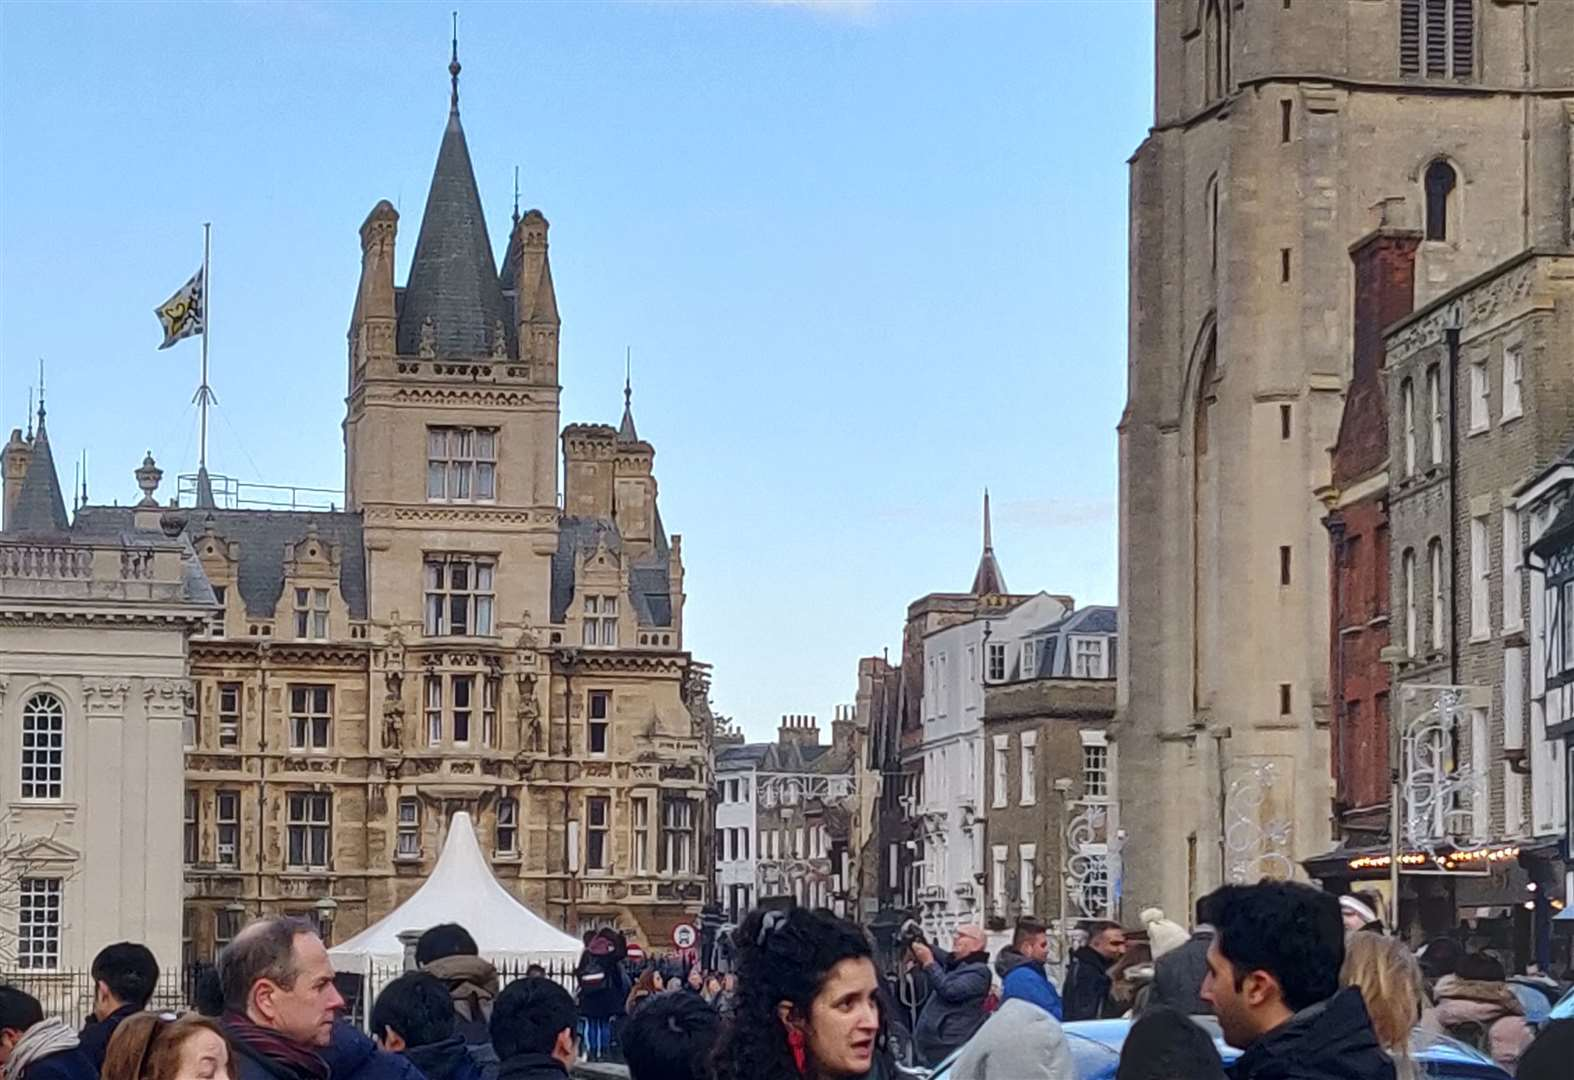 London Bridge attack: Vigil in Cambridge, election campaign suspended and minute's silence planned